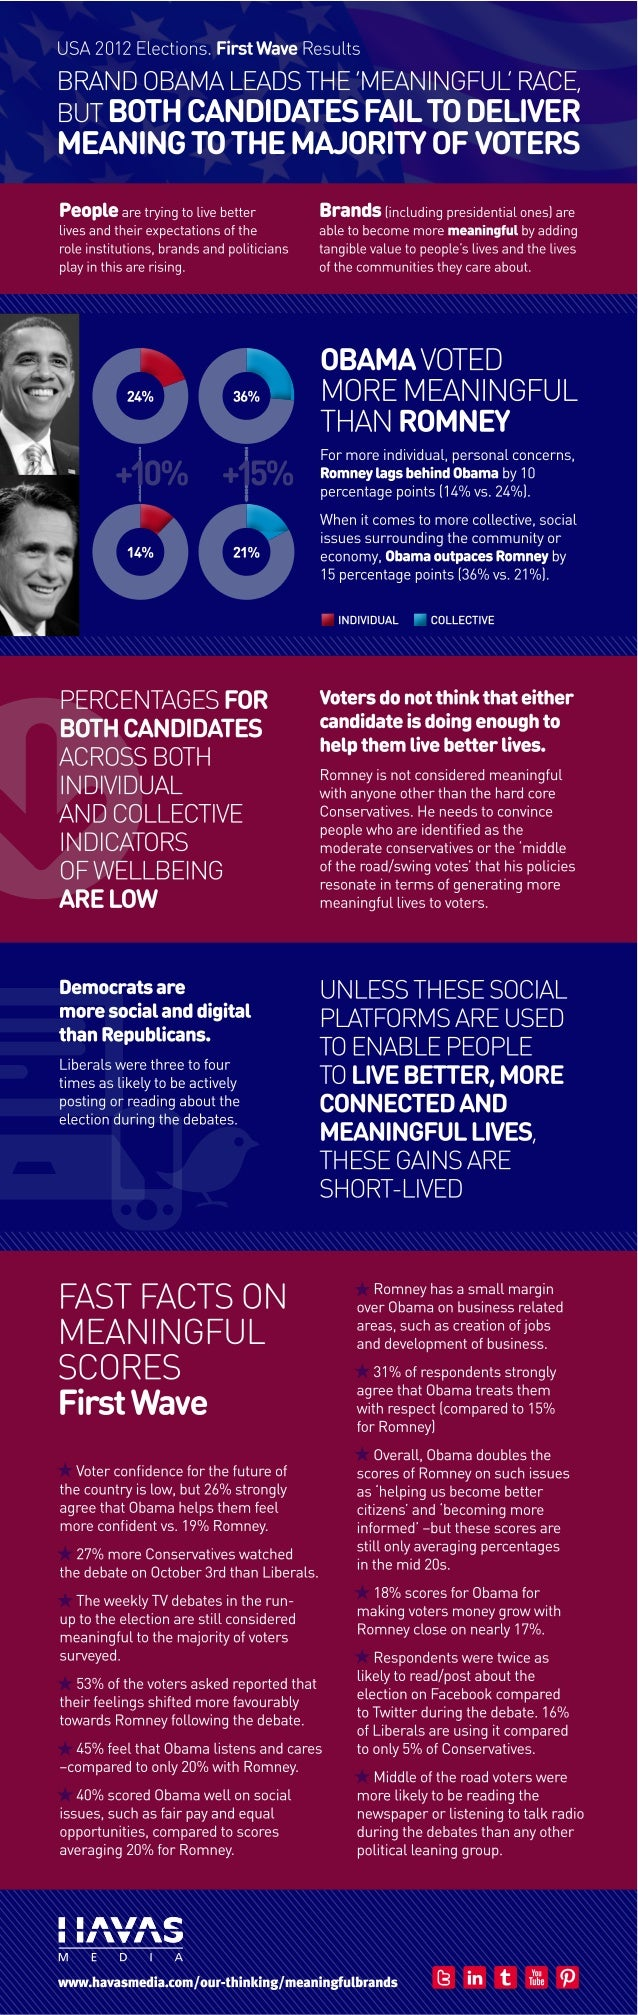 USA 2012 Elections: Are candidates delivering meaning to the voters?